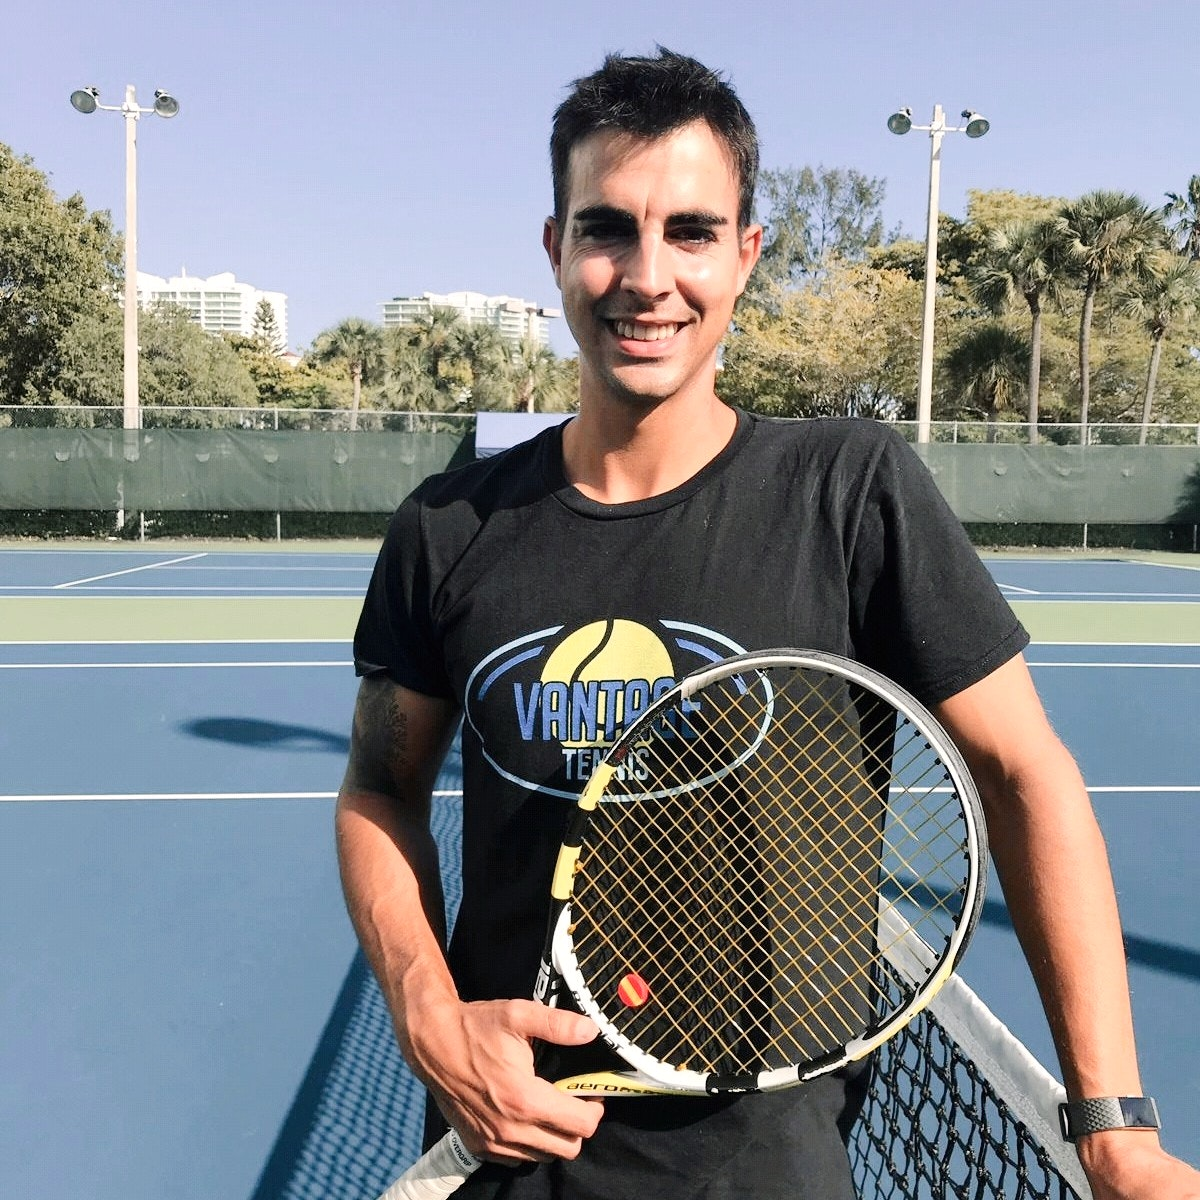 Ramon G. teaches tennis lessons in Aventura, FL